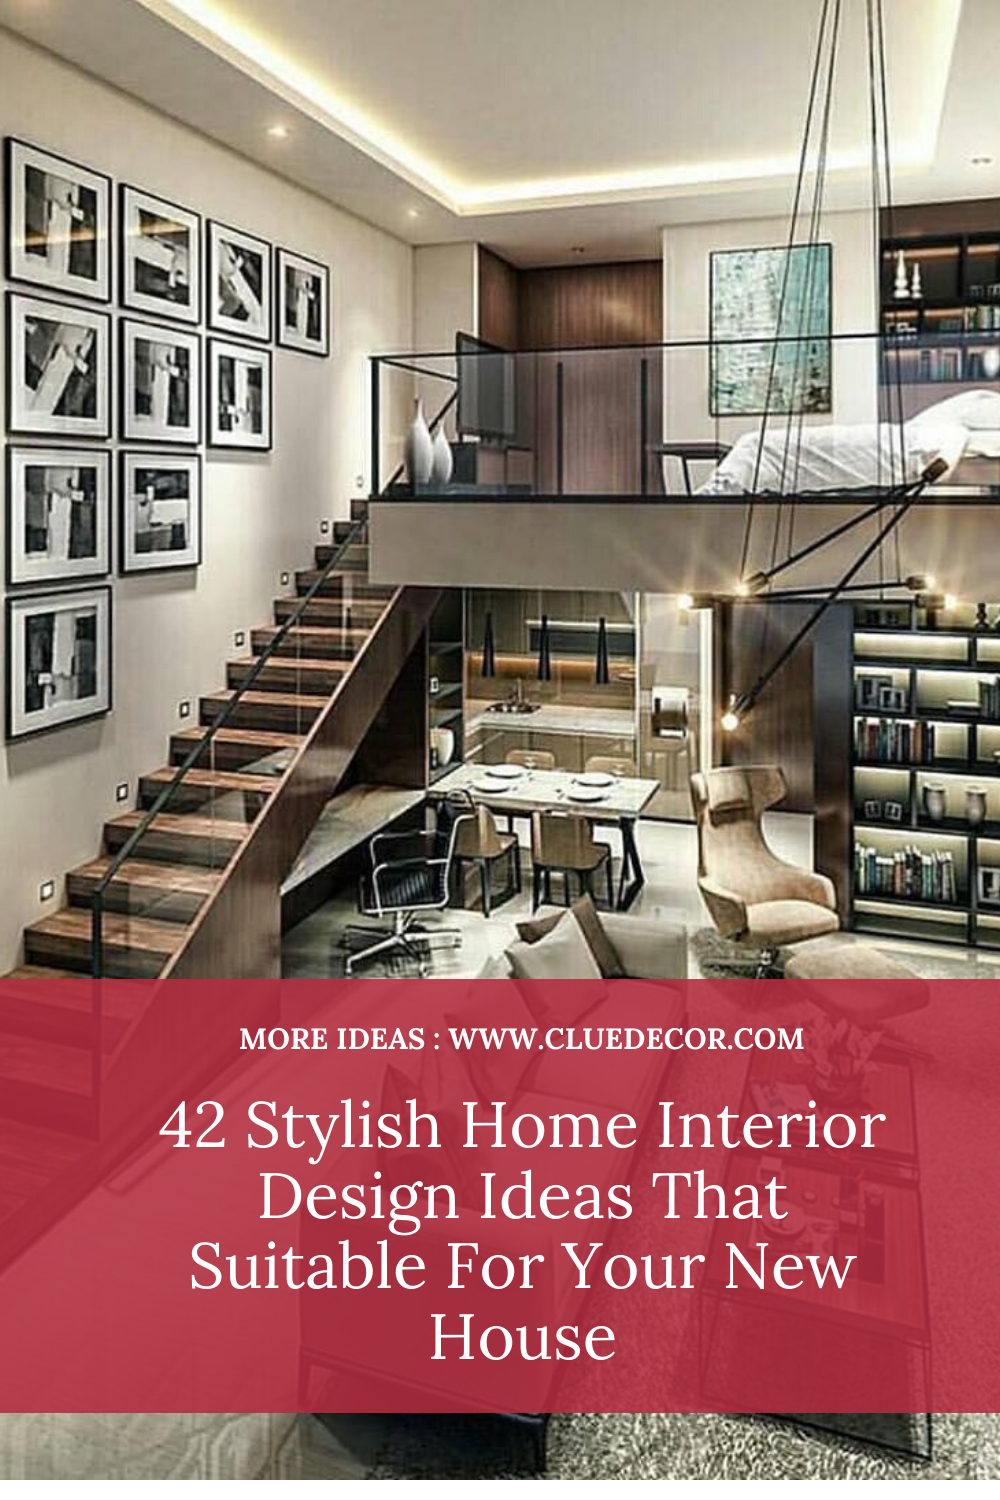 42 Stylish Home Interior Design Ideas That Suitable For Your New House Cluedecor